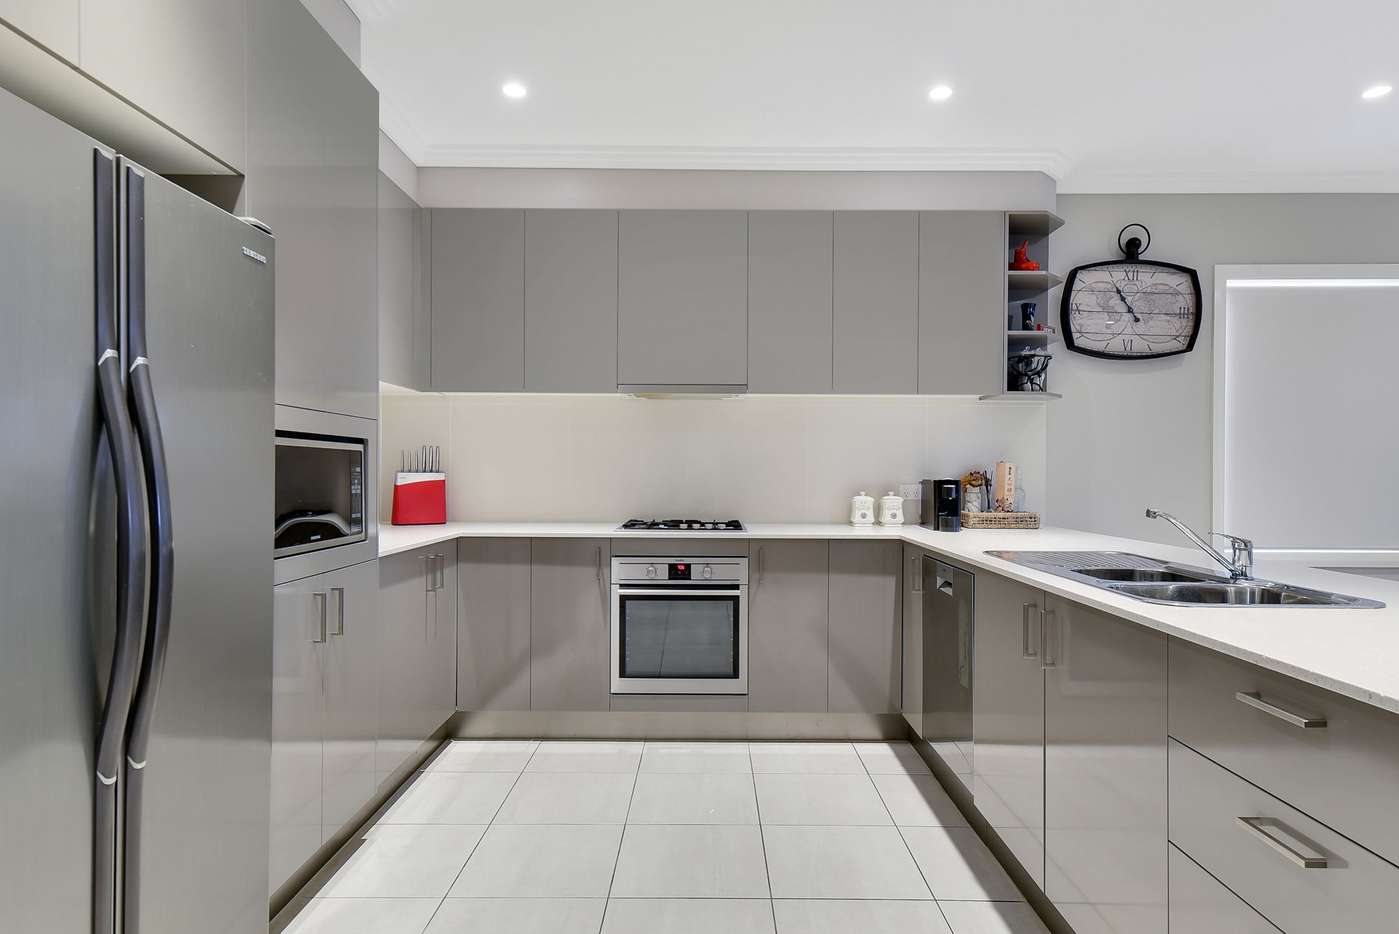 Main view of Homely house listing, 76 The Straight, Oran Park, NSW 2570